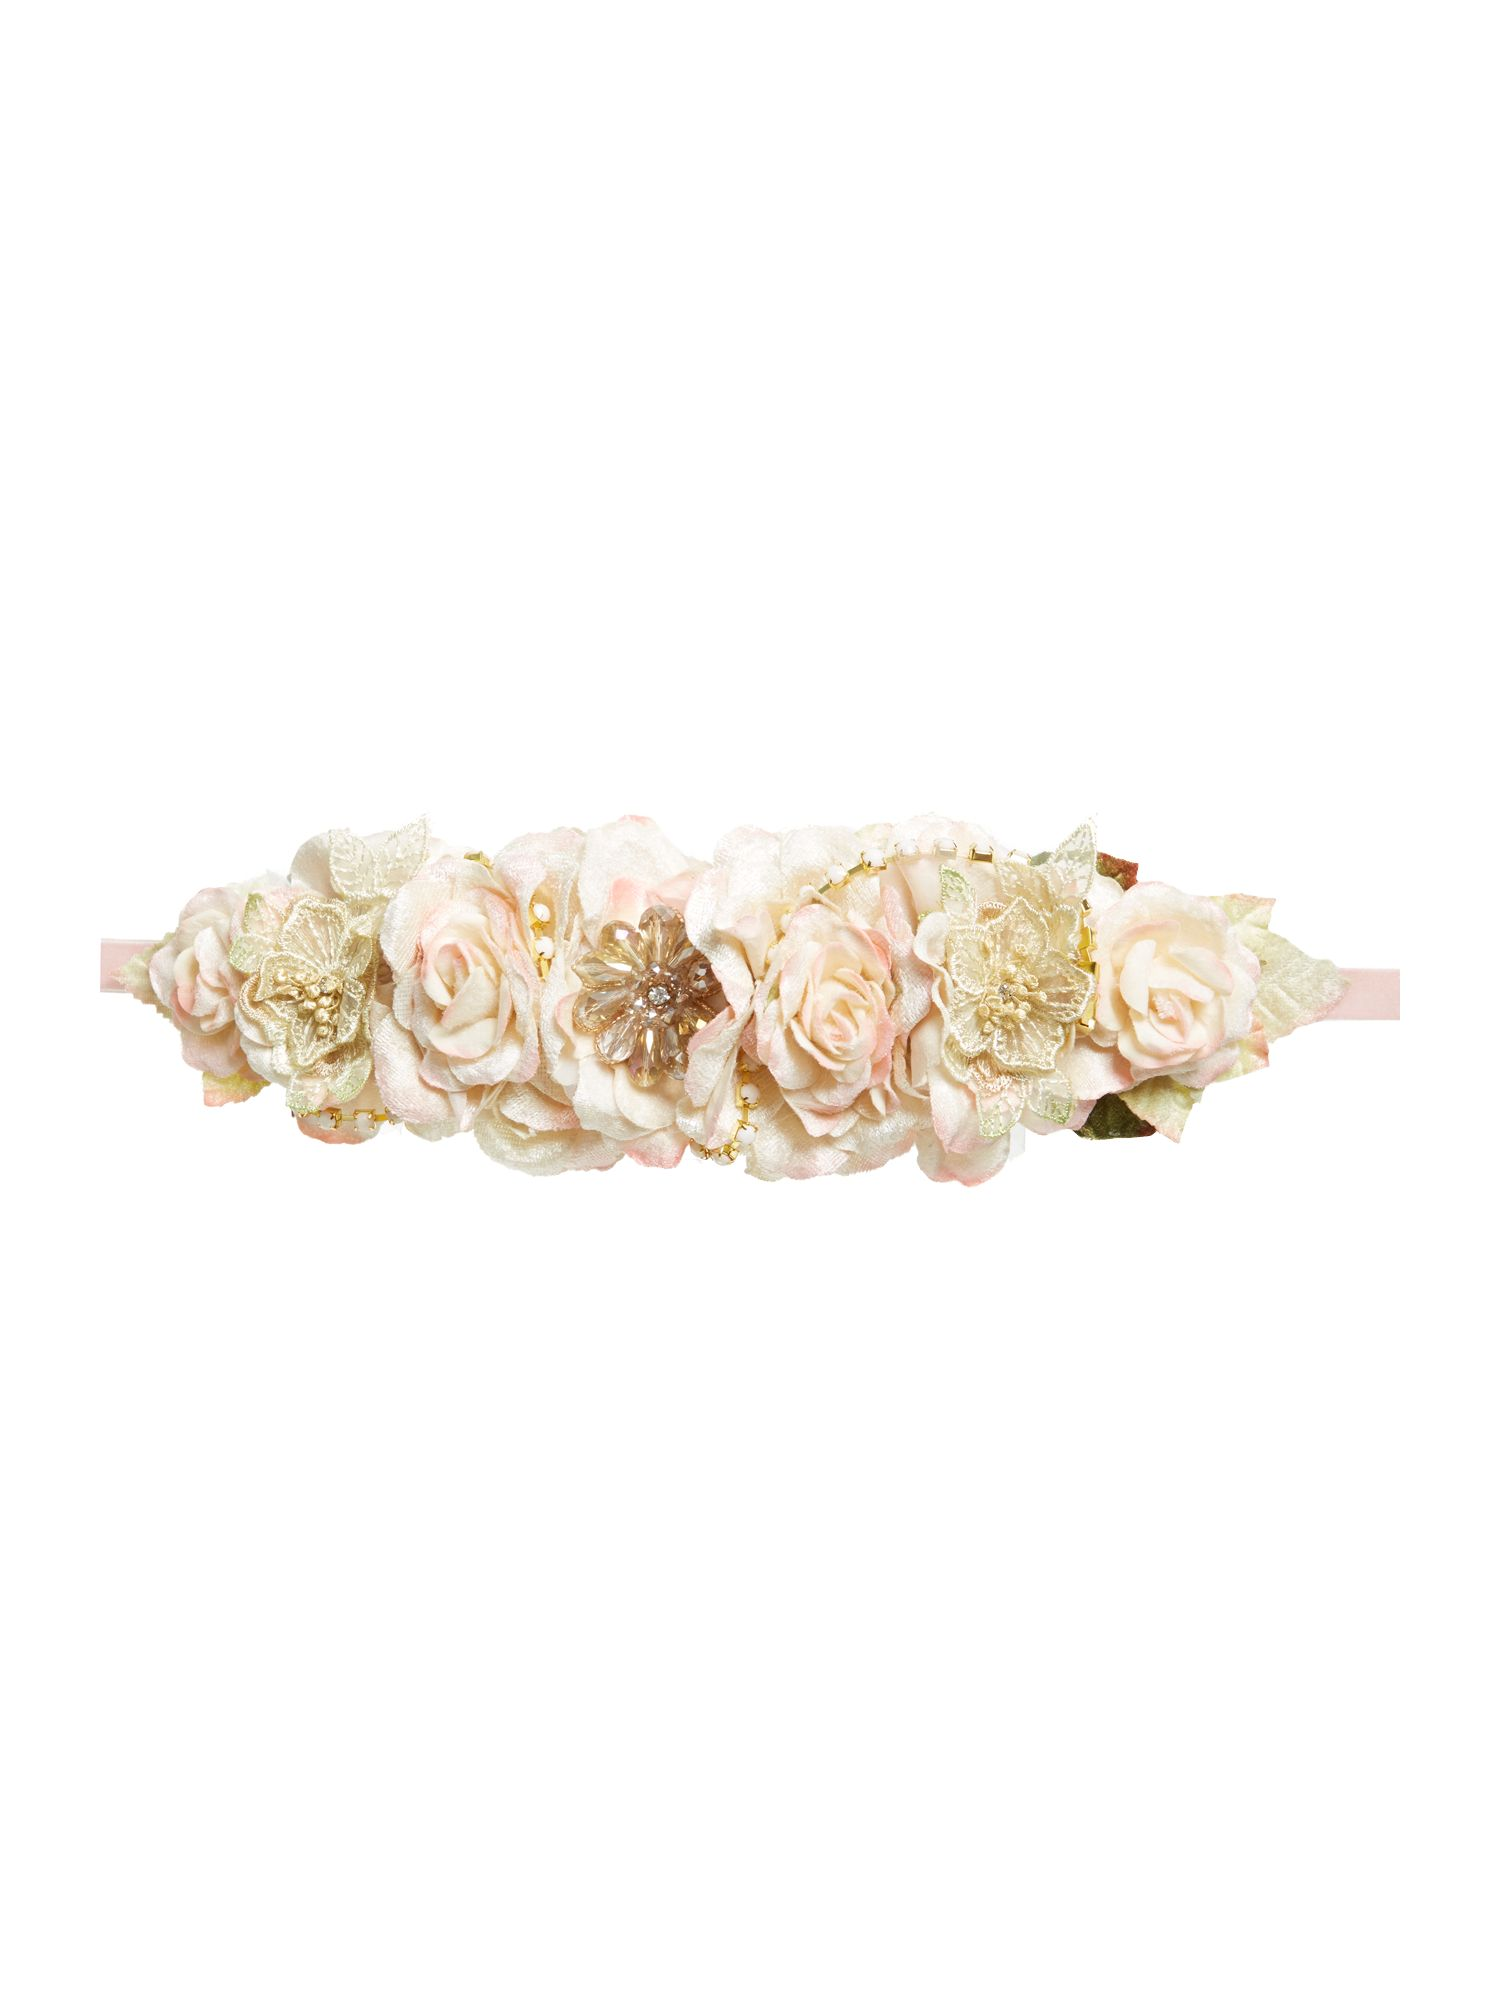 Oversized bridal style floral crown